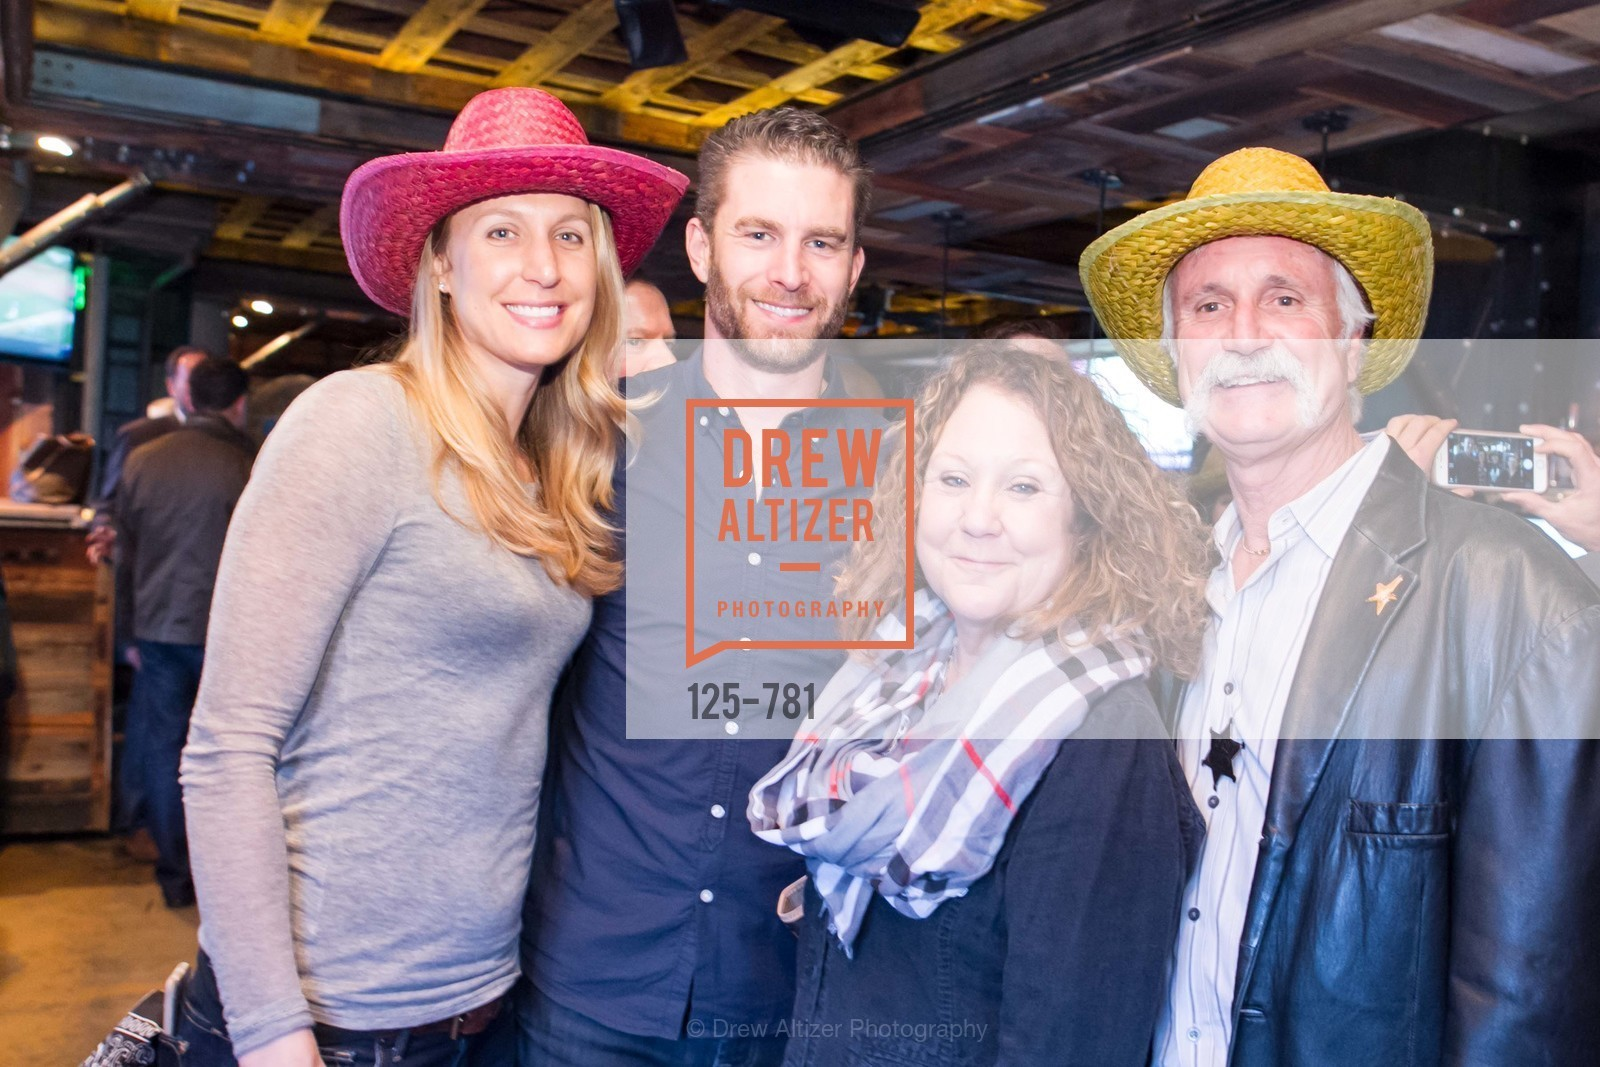 Heidi Hudson, Ryan Hudson, Nancy Ballard, Mario Ballard, Rooms That ROCK FOR CHEMO Fundraiser, US, April 1st, 2015,Drew Altizer, Drew Altizer Photography, full-service agency, private events, San Francisco photographer, photographer california